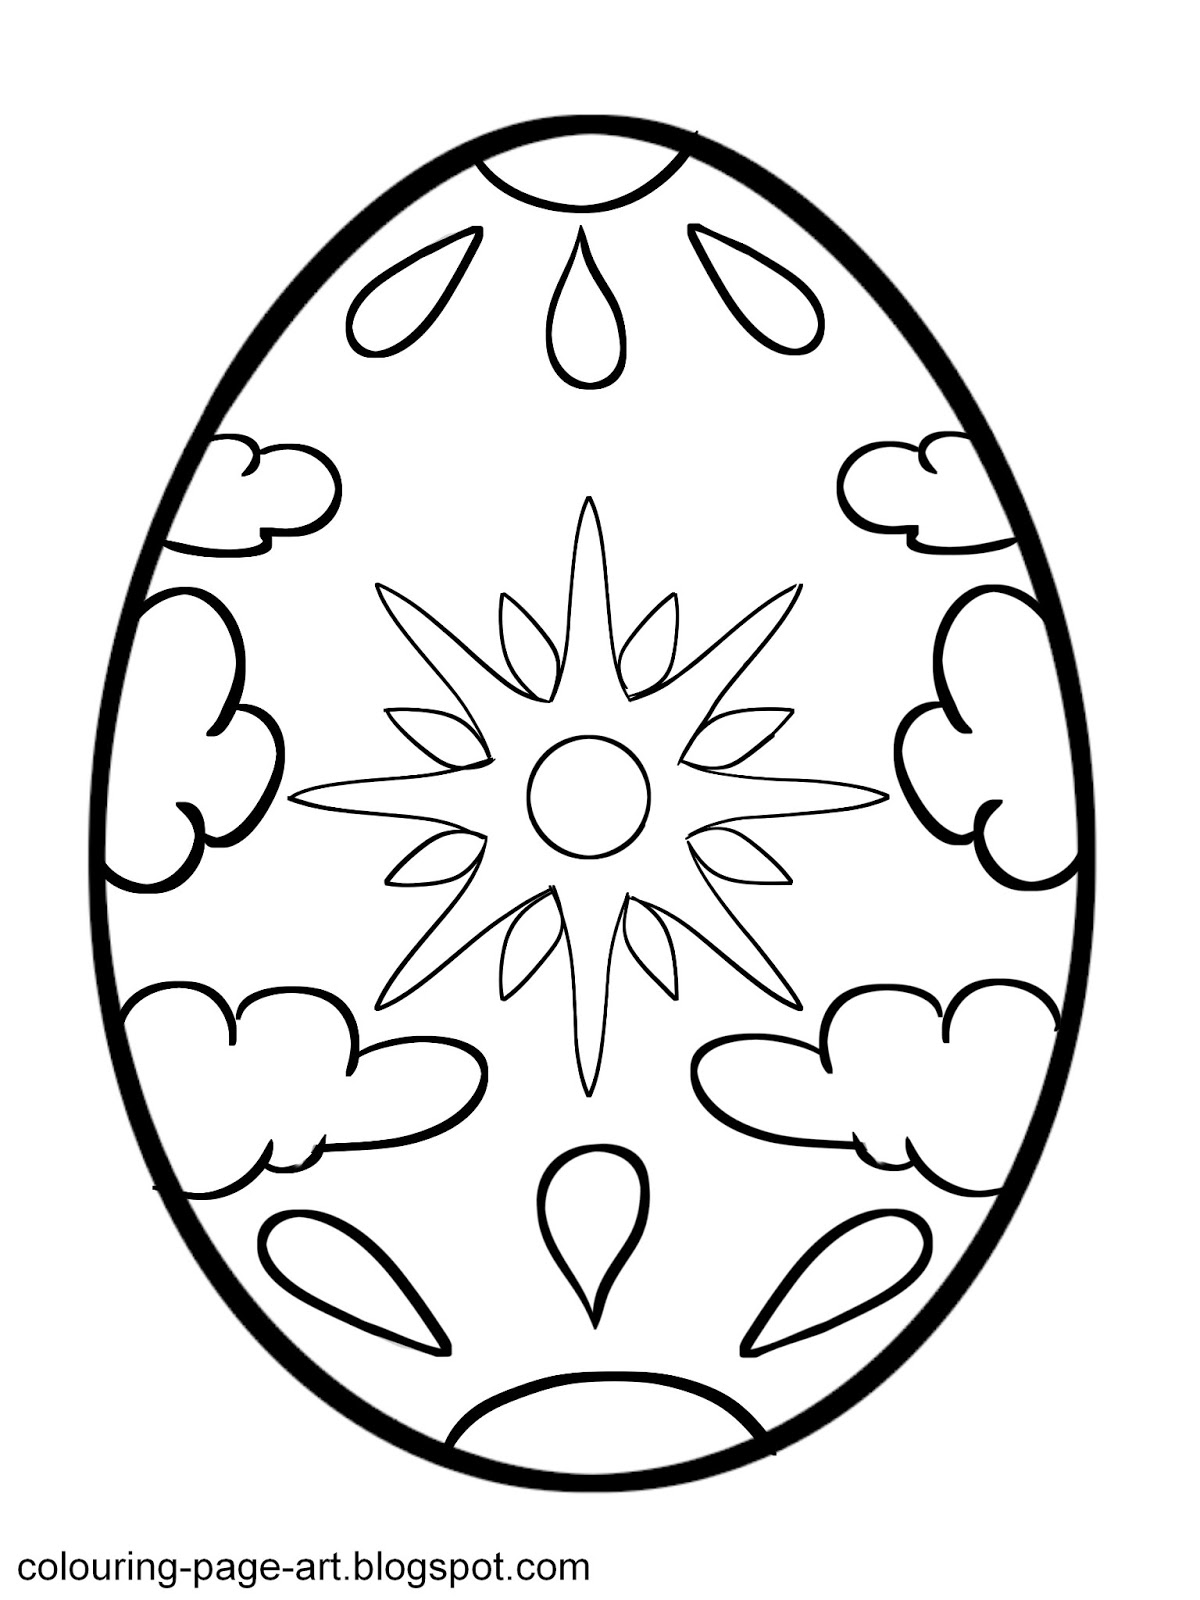 blank easter egg templates colouring page art